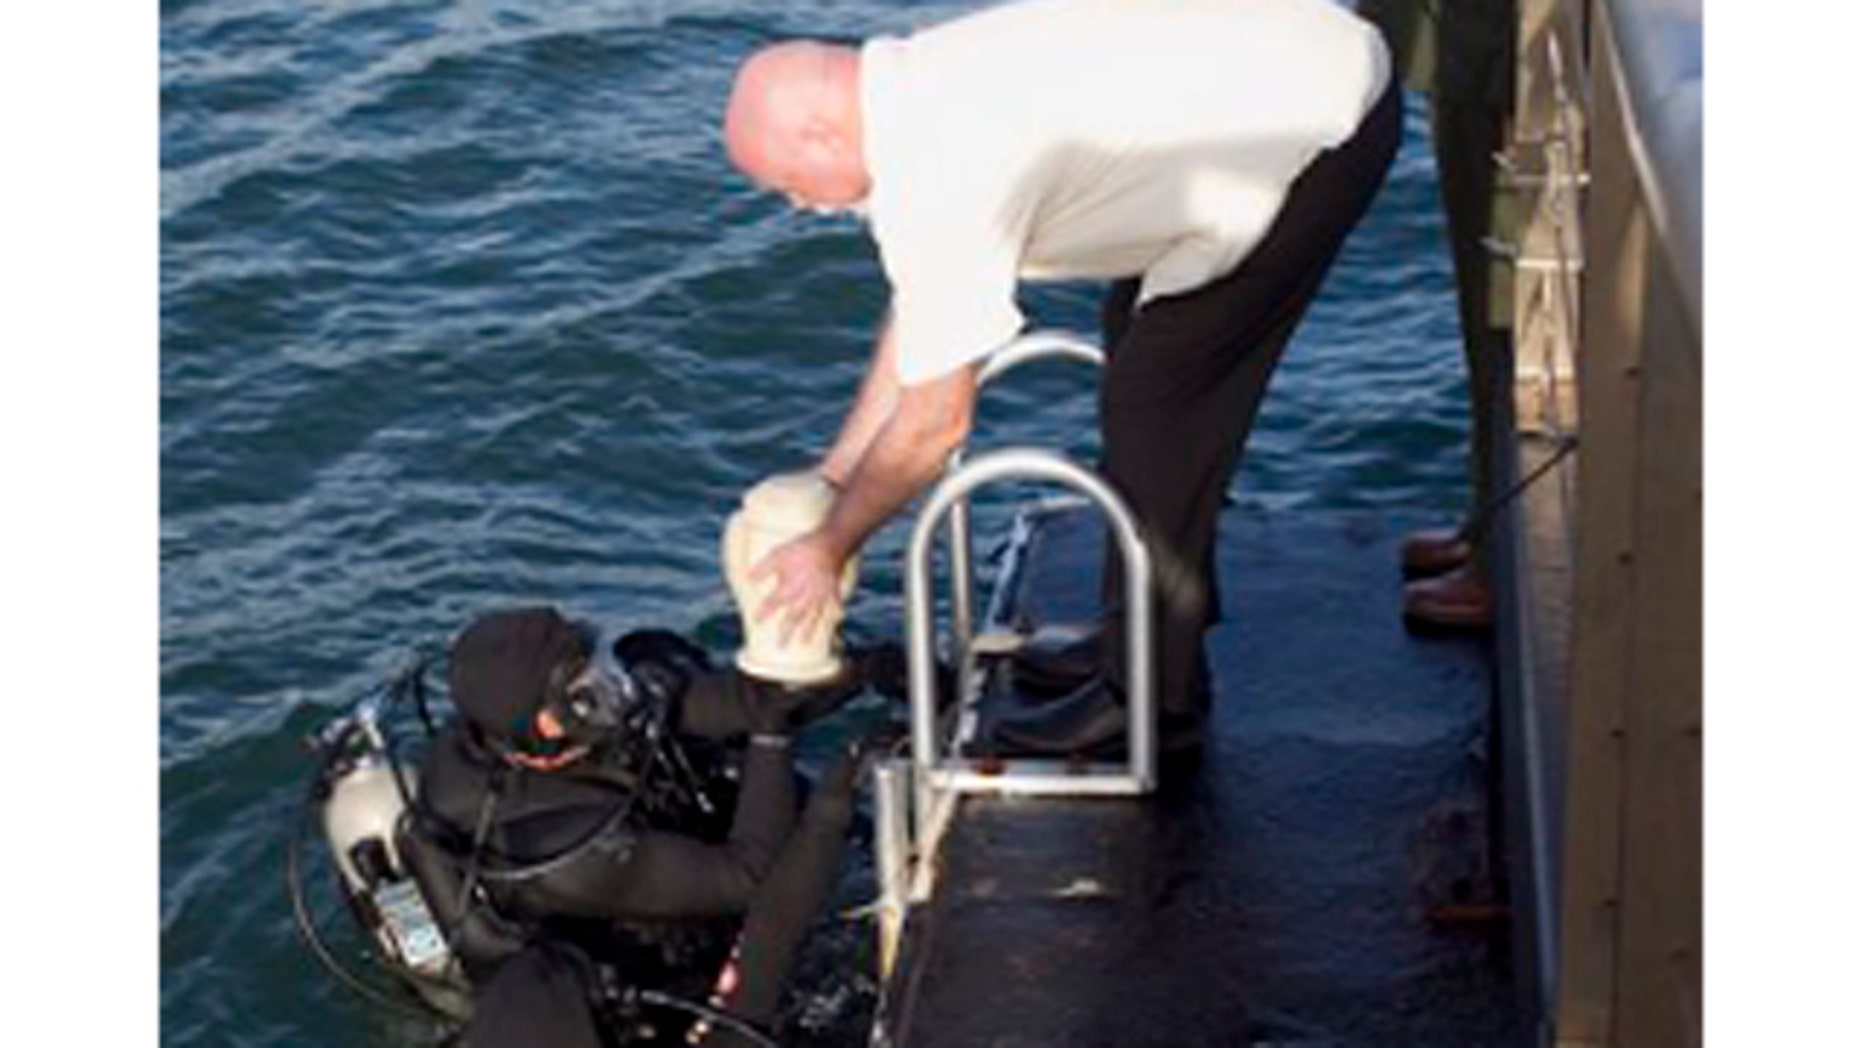 Dec. 23, 2011: As National Parks Historian Daniel Martinez salutes, Jerry Cabiness, center, hands the remains of his father to divers to be interred inside the USS Arizona in Honolulu.